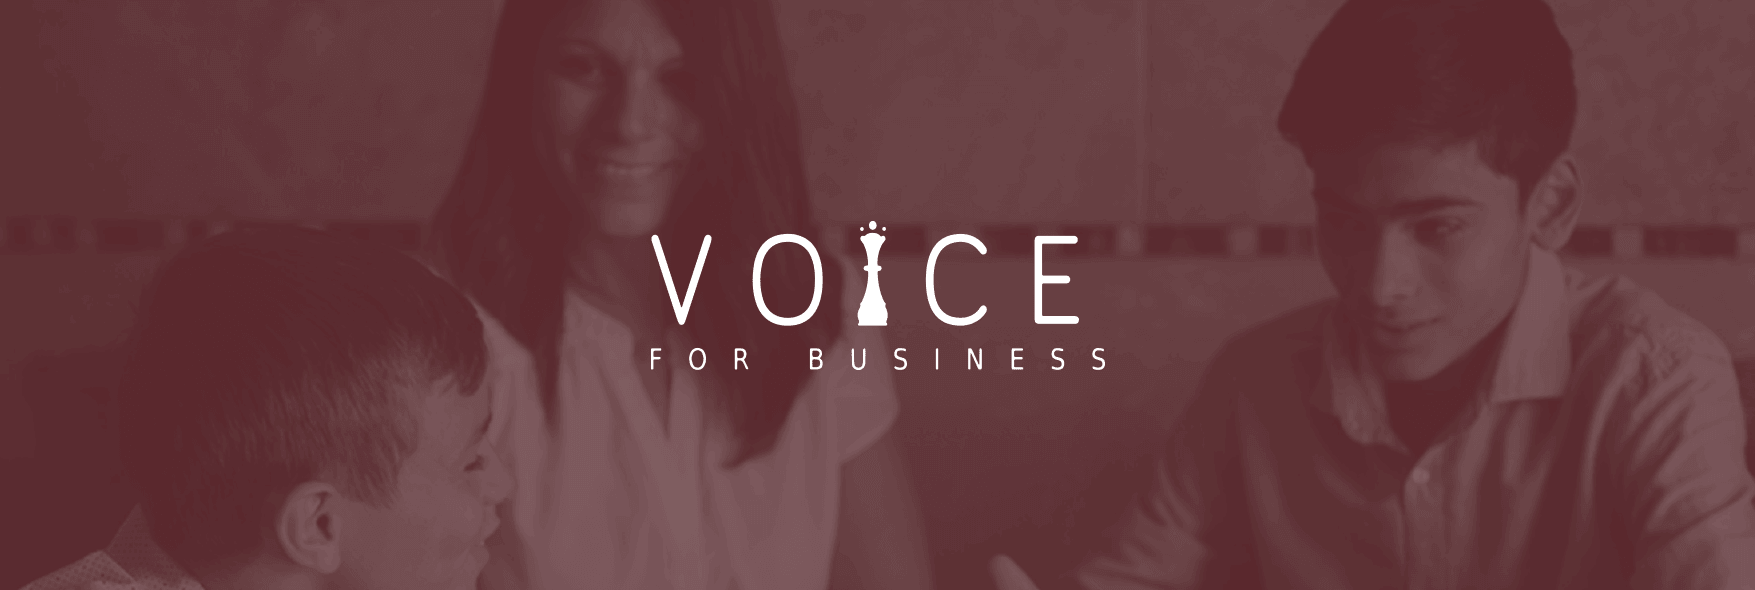 Voice For Business fondo